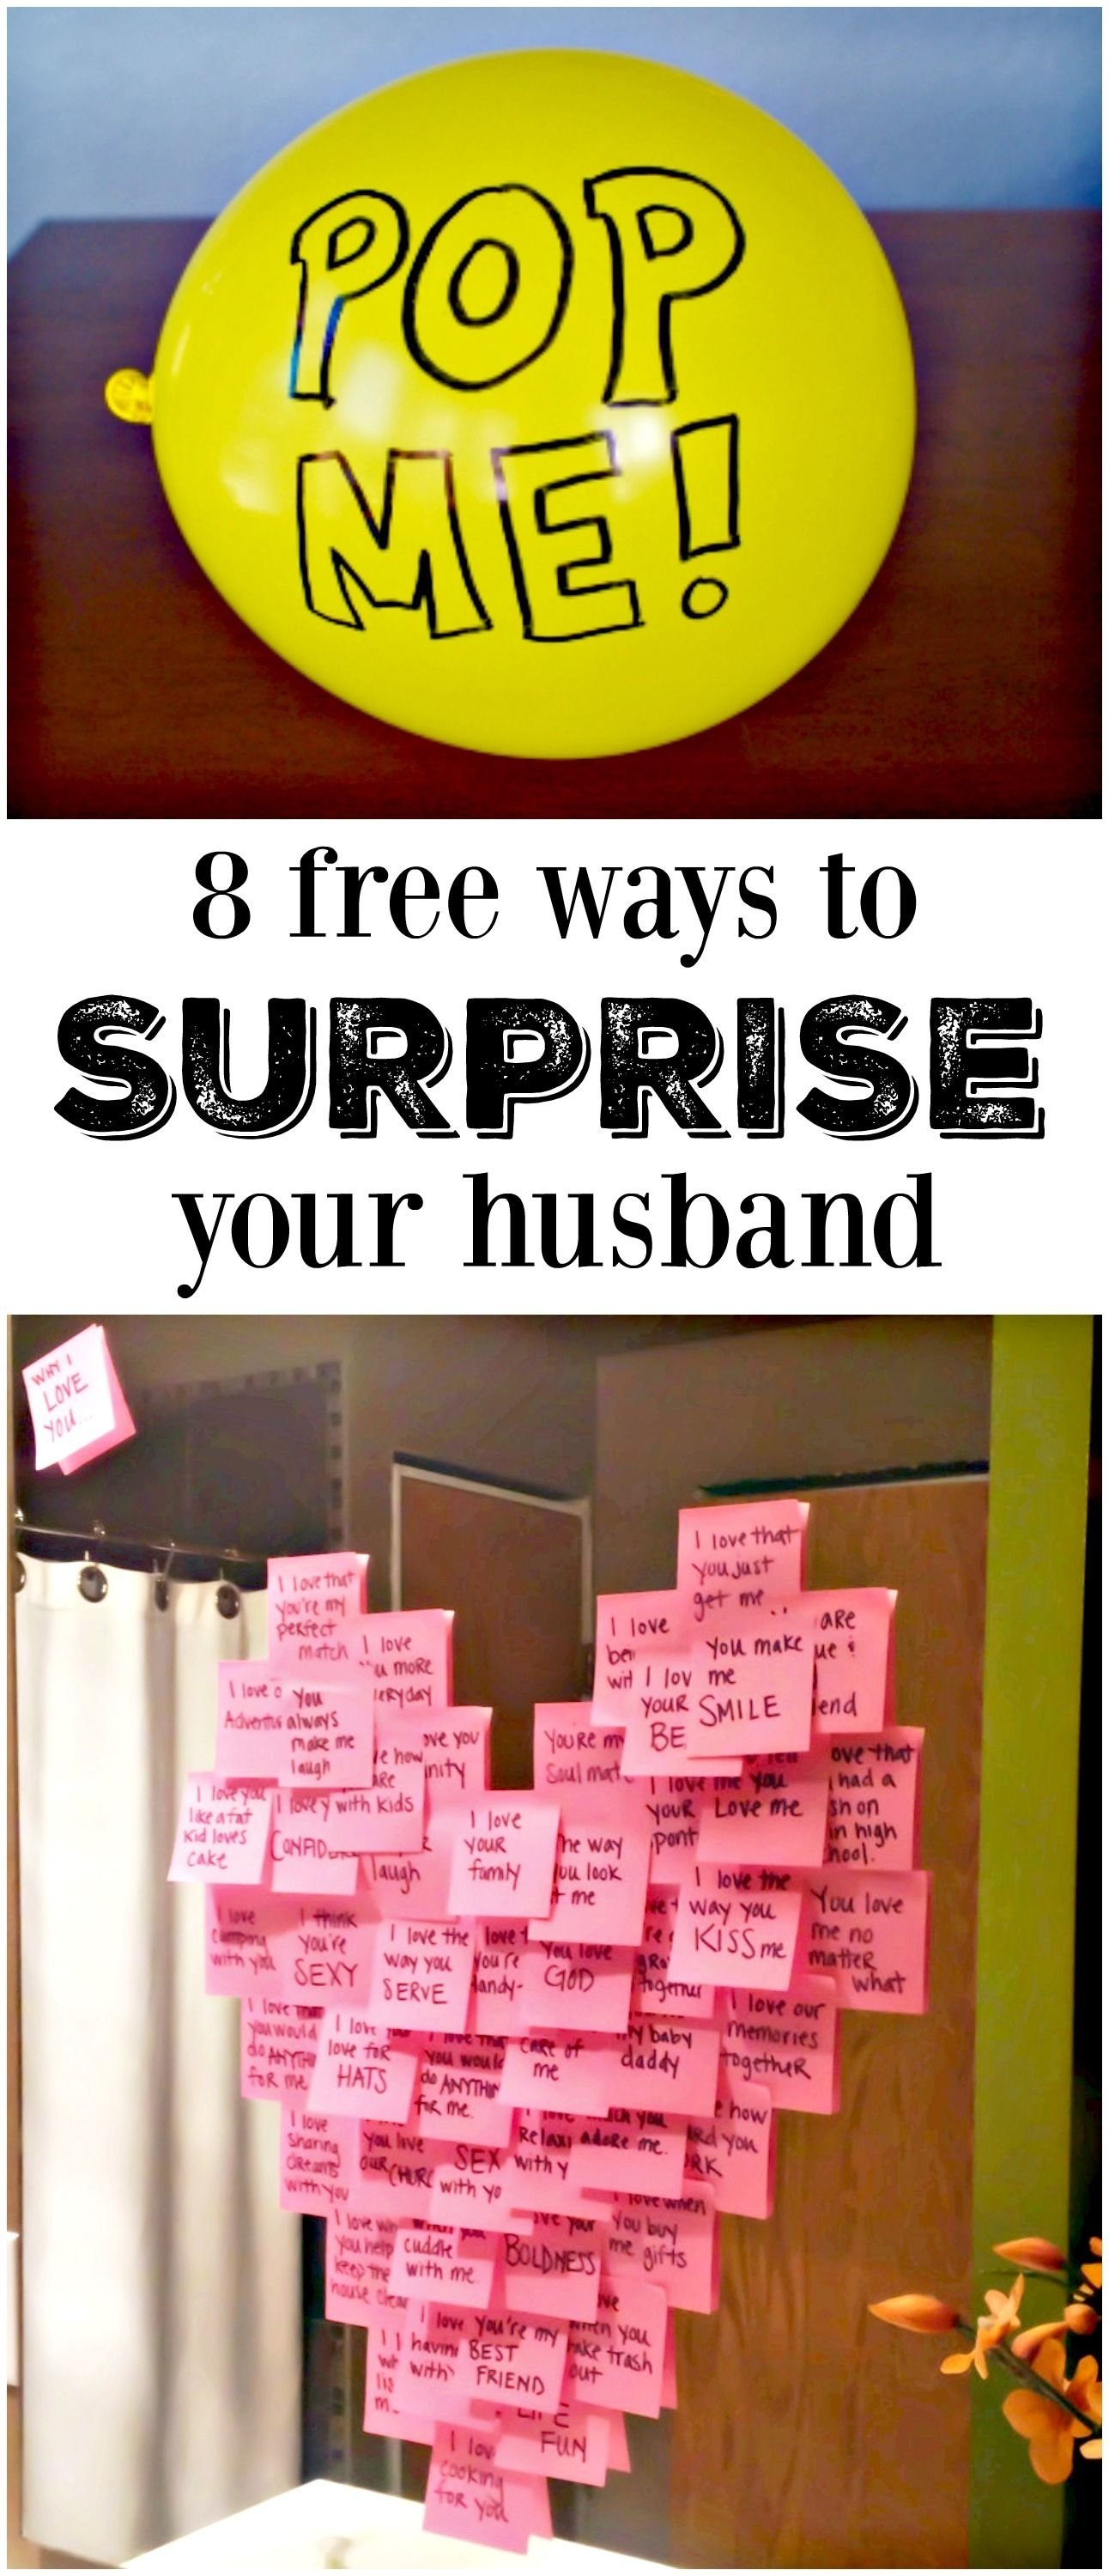 10 Amazing Creative Birthday Ideas For Husband 8 meaningful ways to make his day free gift and relationships